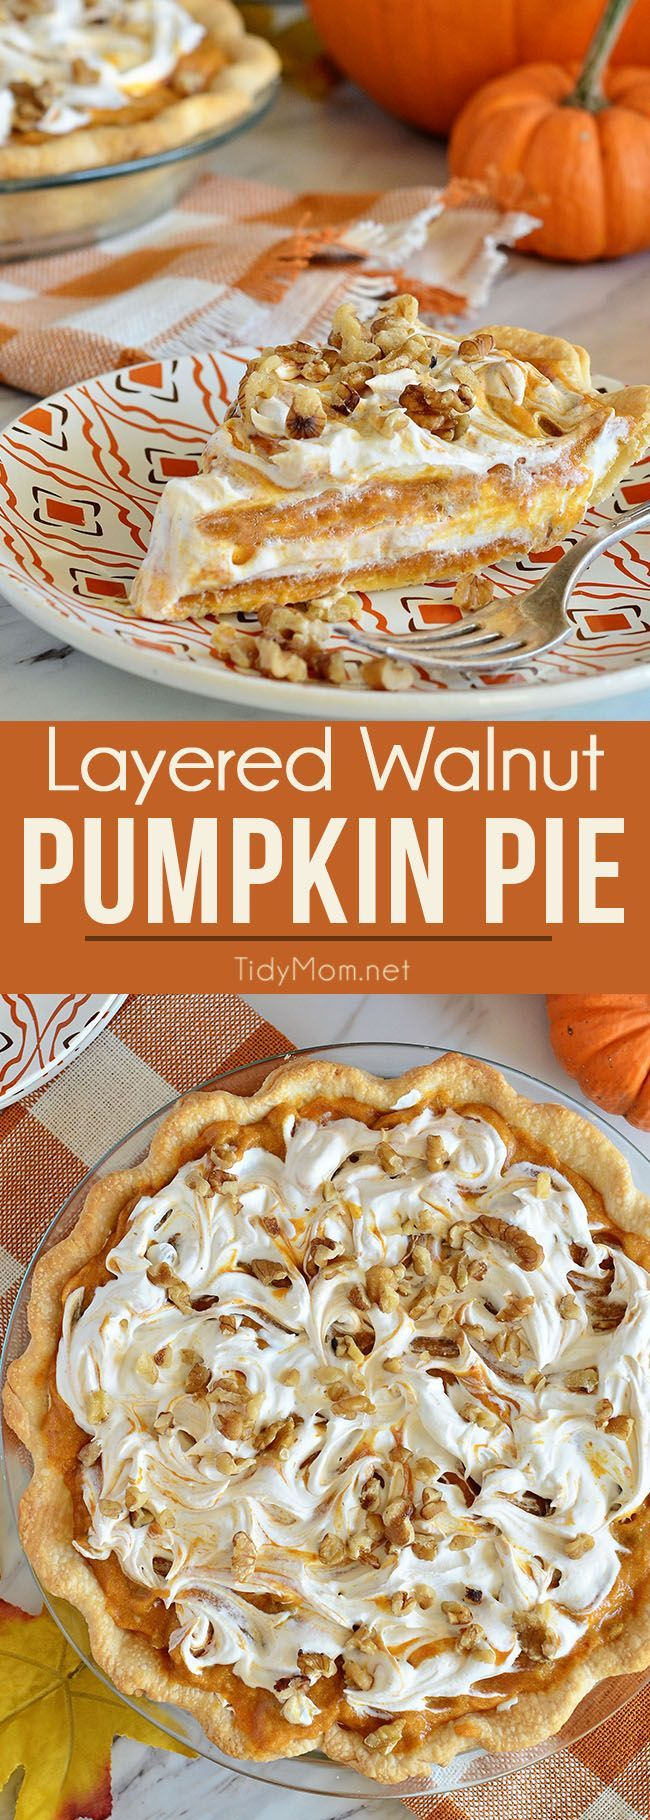 LAYERED WALNUT PUMPKIN PIE has been a long tradition in our family for Thanksgiving. This family favorite pumpkin pie recipe that was handed down to me by my grandpa 30+ years ago. This EASY recipe not your ordinary pumpkin pie, it's a light and fluffy, s